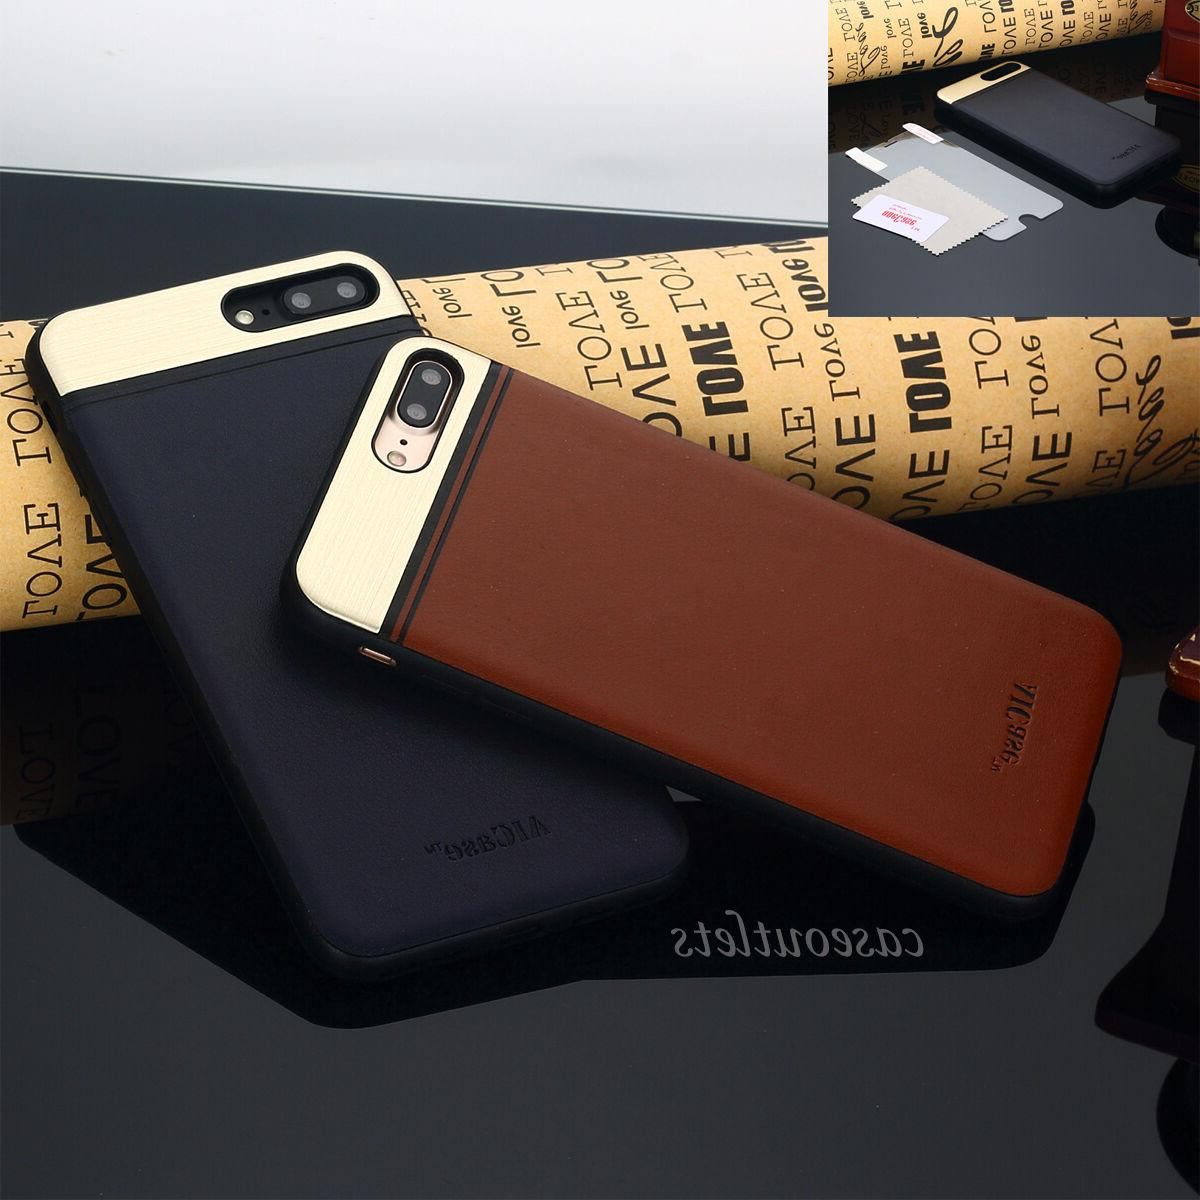 Genuine AICase Luxury Slim Leather Shockproof PC Case Cover